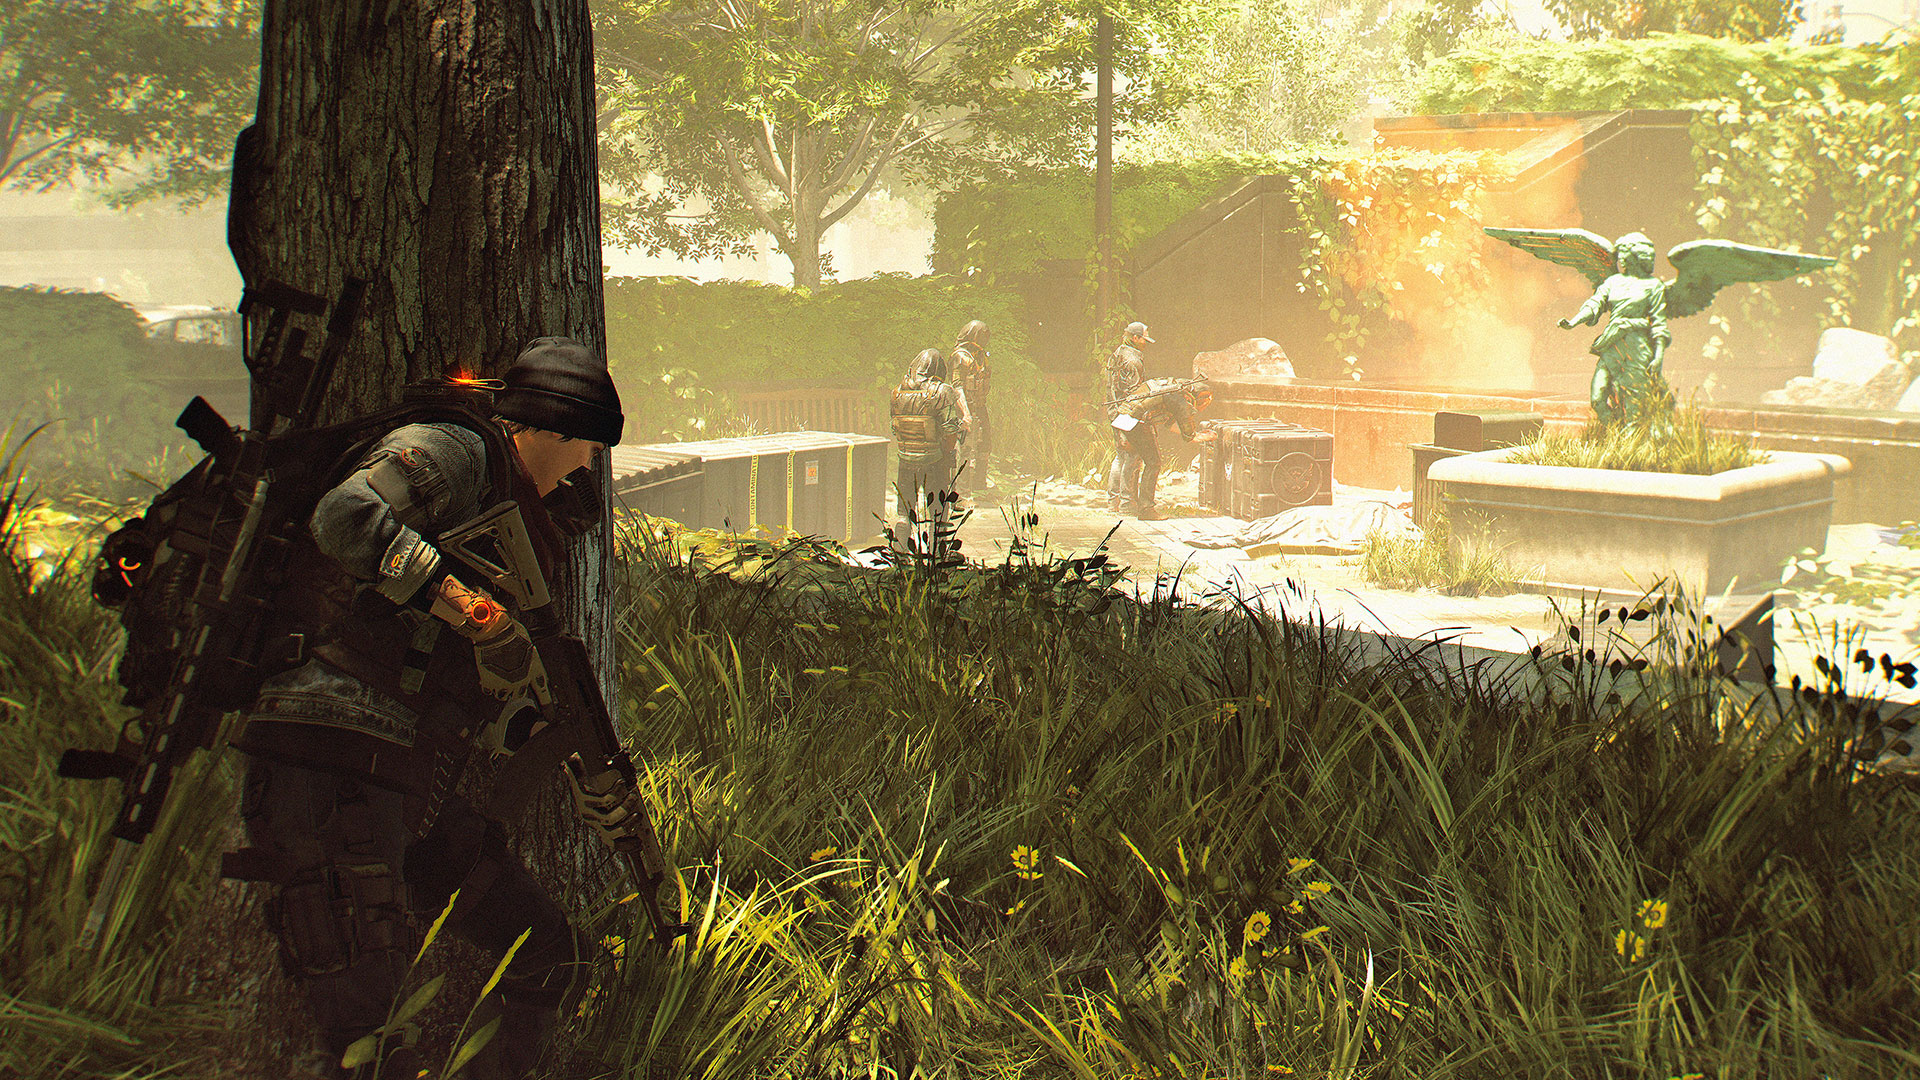 The Division 2's Dark Zone is smaller than its predecessor's screenshot